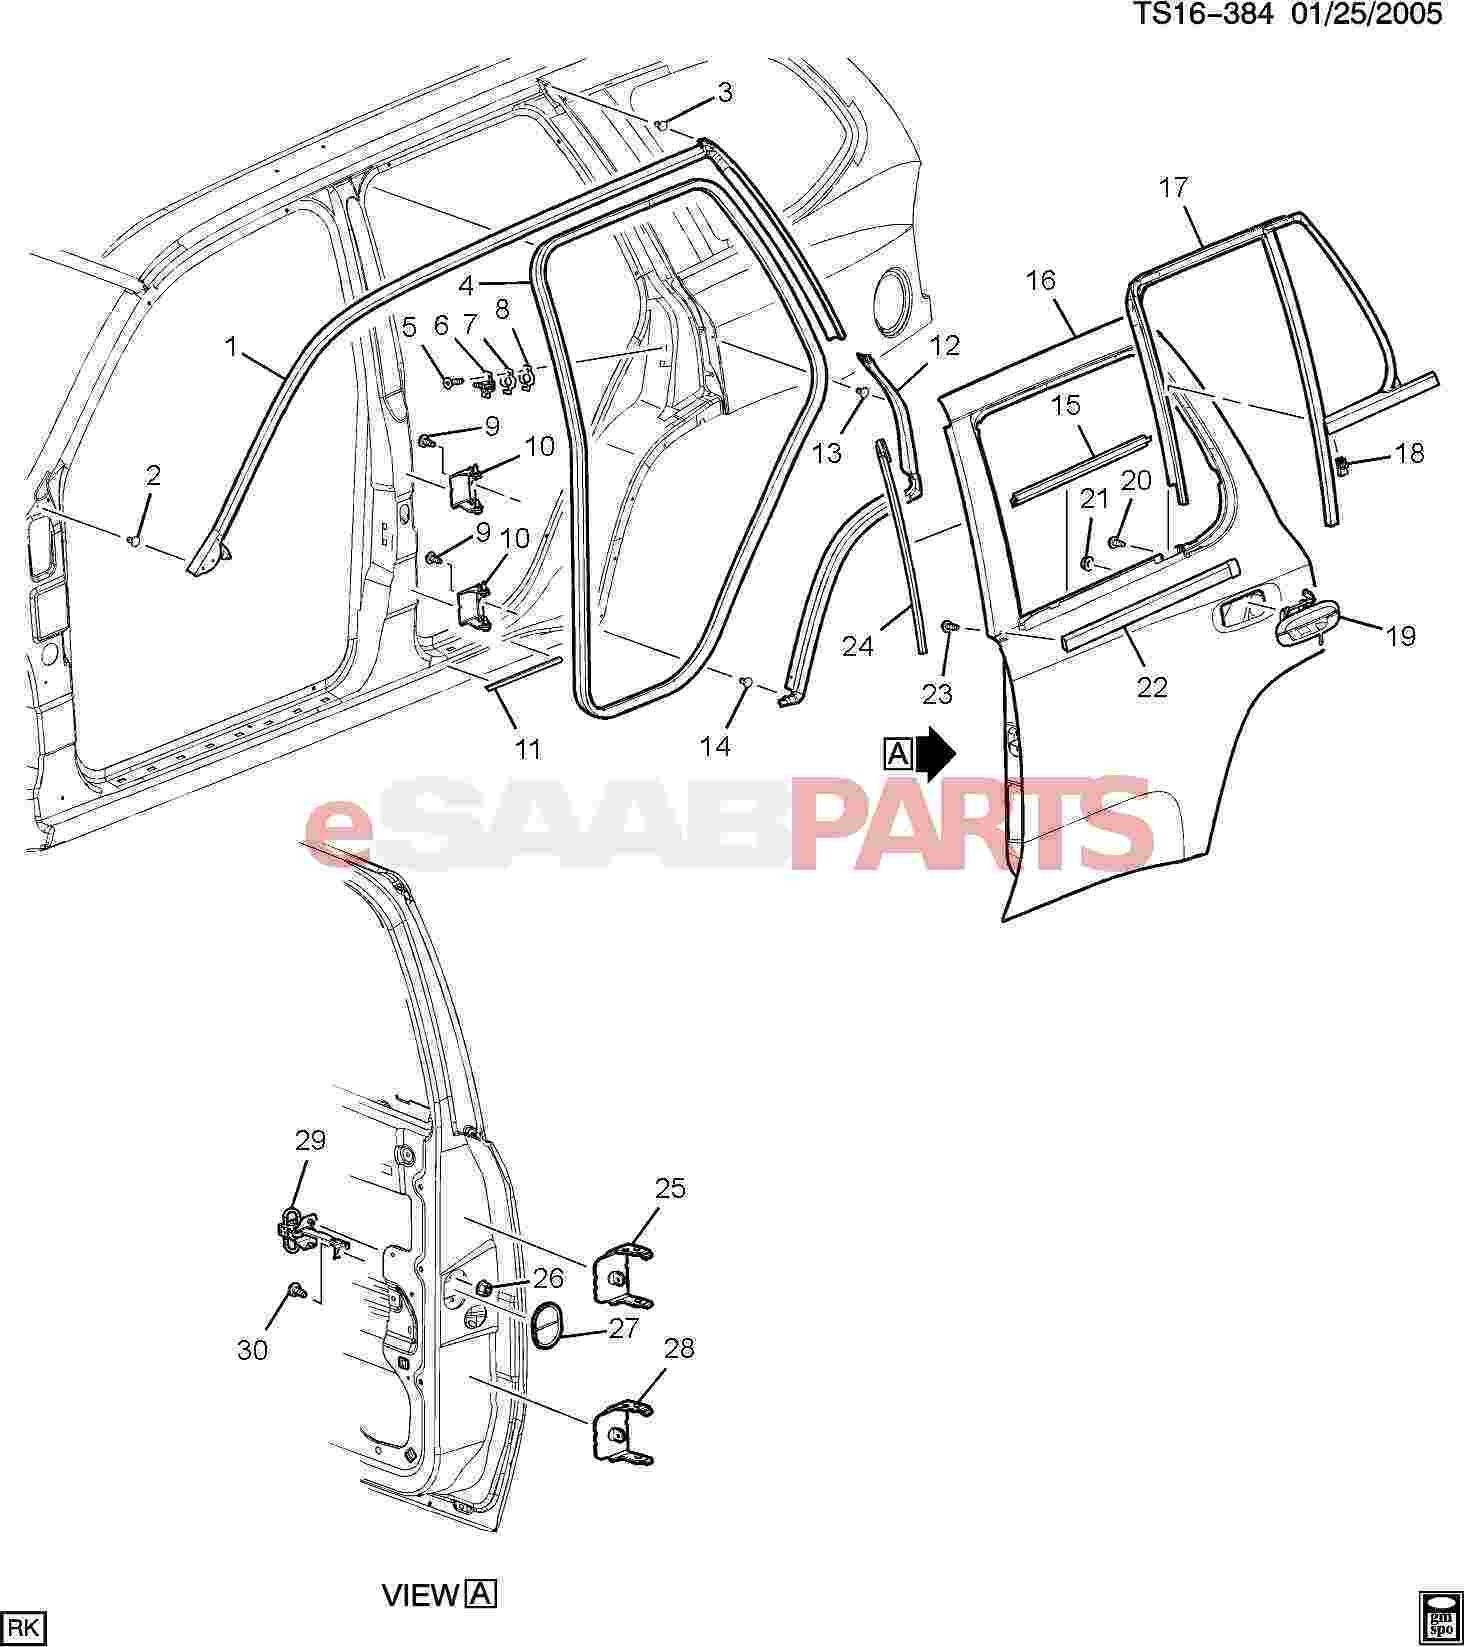 Basic Diagram Of Car Parts ] Saab Screw Hex with Flat Wa M4 2×1 4×13 12 3 O D Bhl Of Basic Diagram Of Car Parts